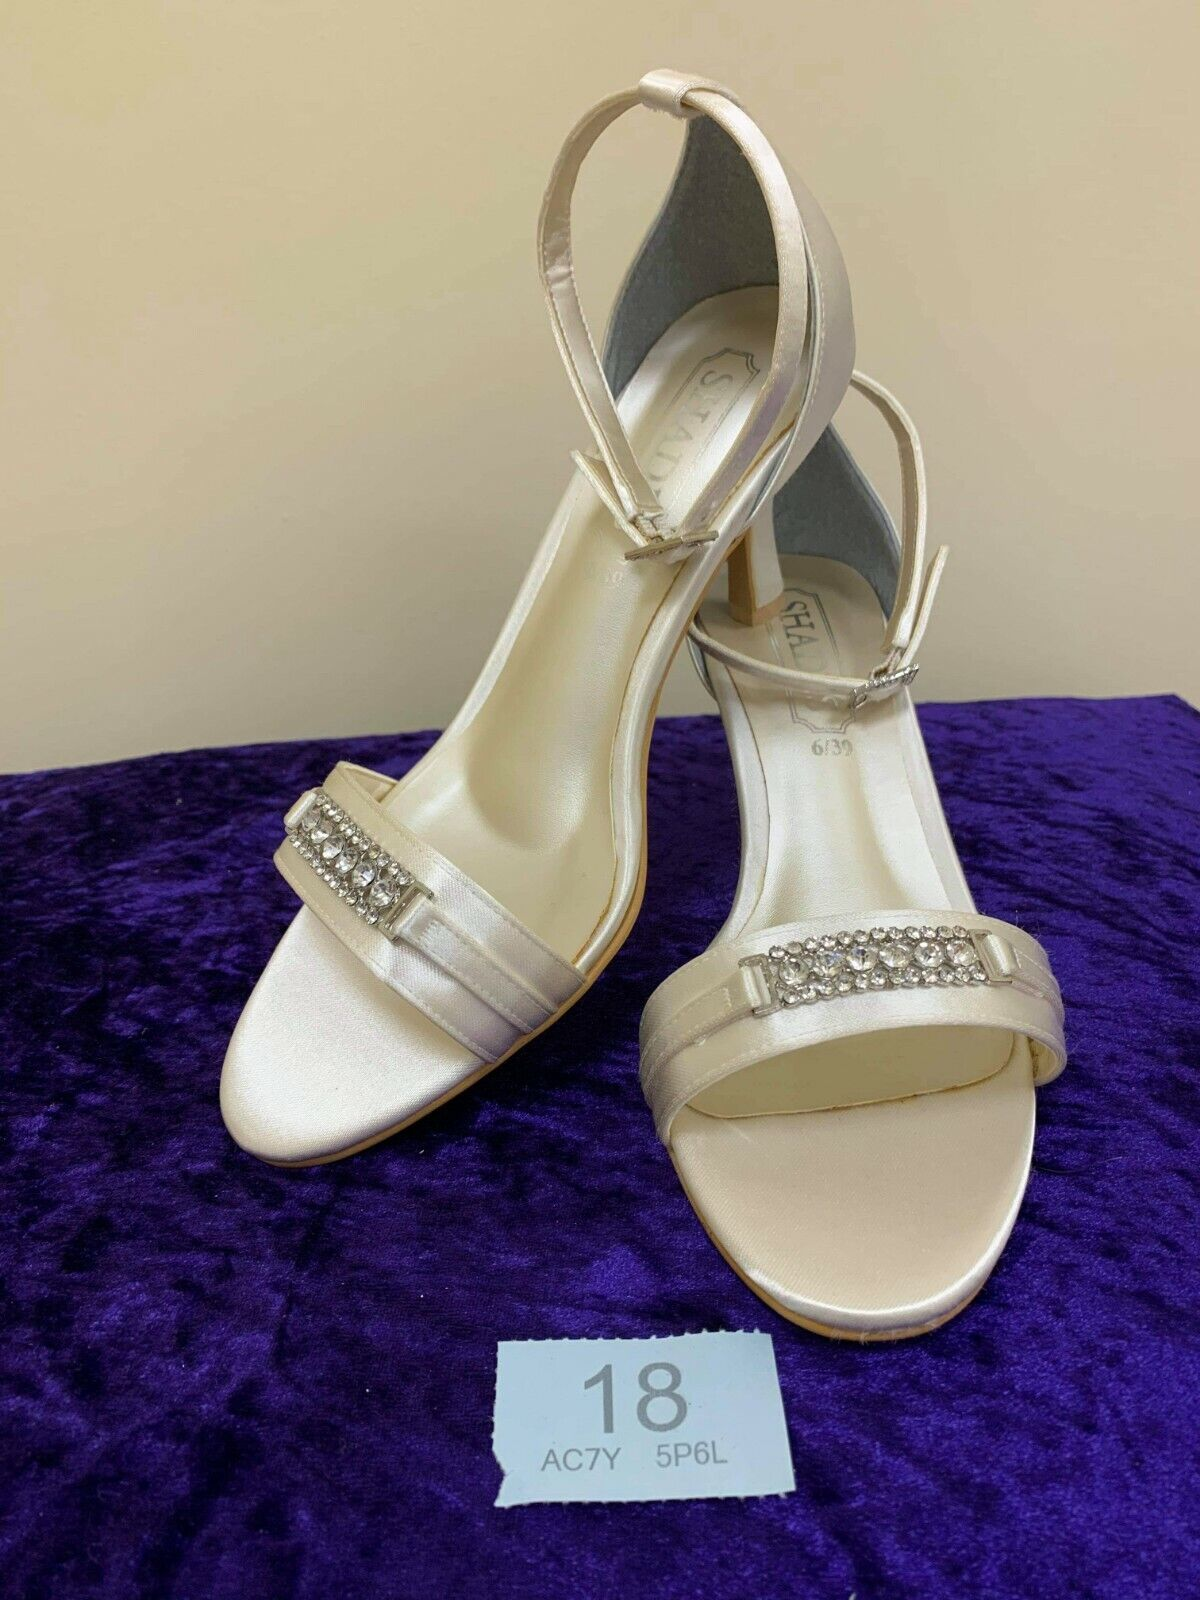 New in box shoes from Shades. Size 6 ivory style 711 code 18